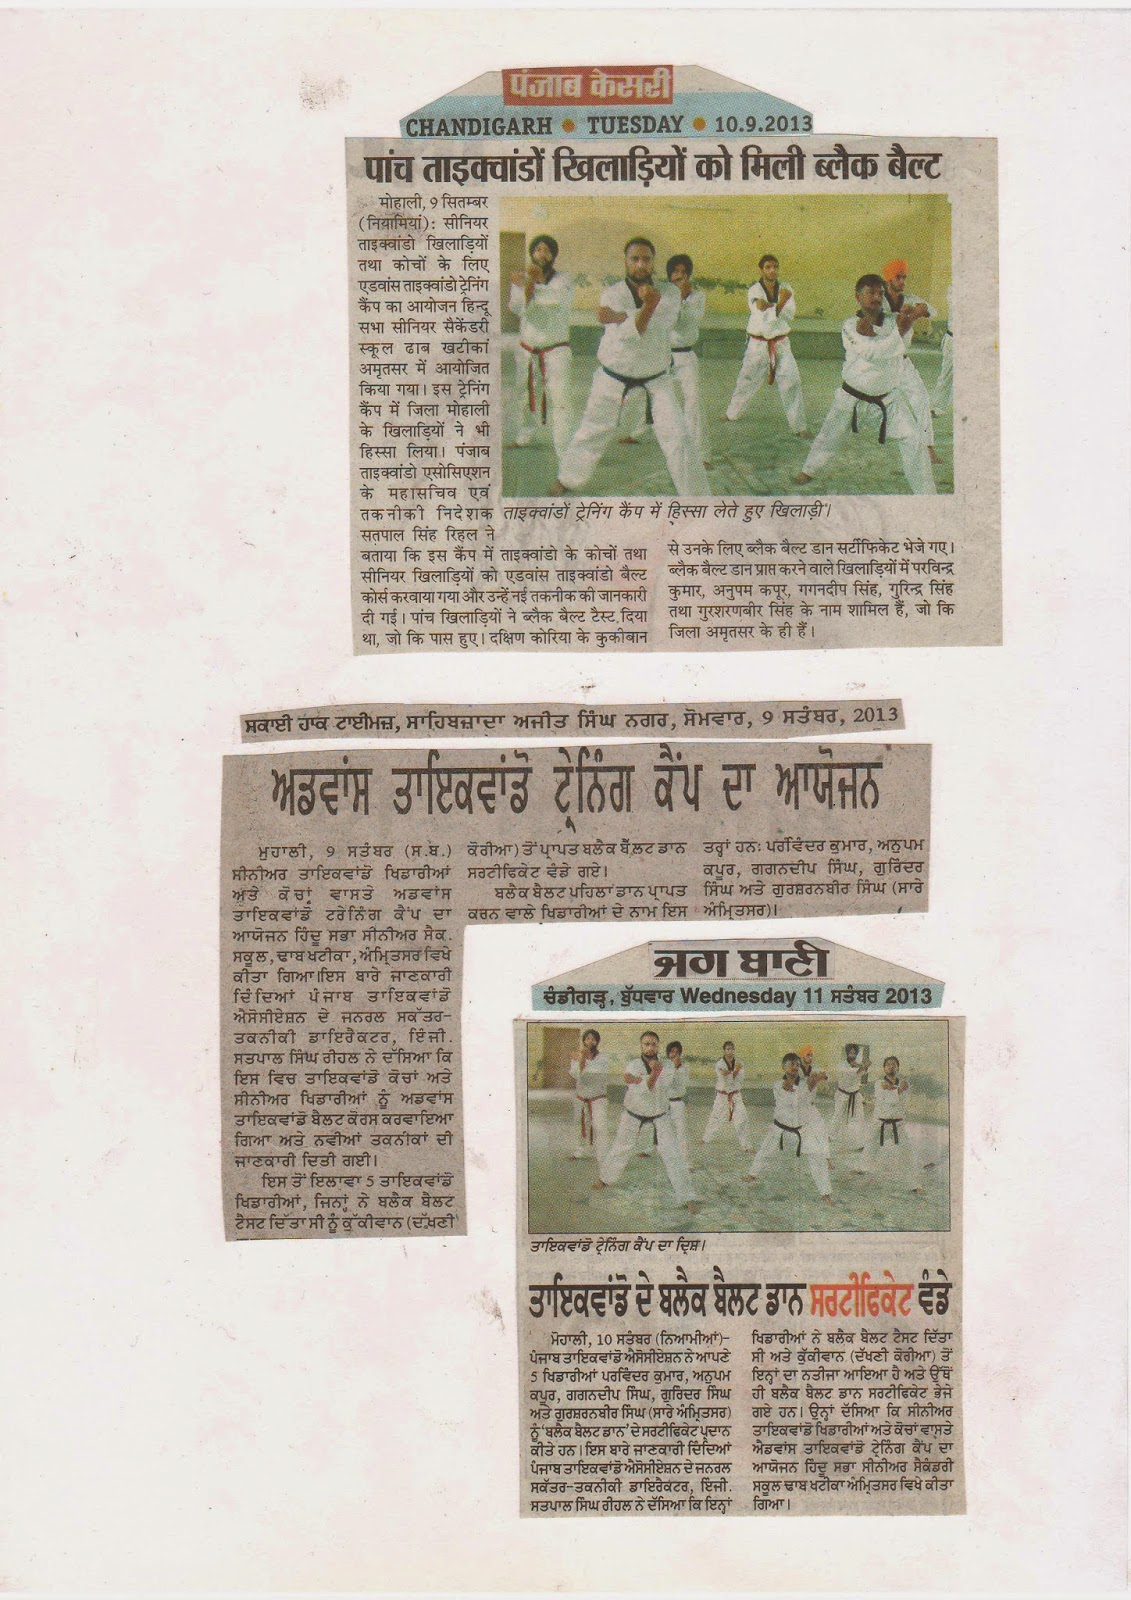 Tkd Training Camp & Black Belt Certificate Distribution Amritsar, Taekwondo, Martial Arts, Tkd, Championships, Training, Classes, Coaching, Self-defence, Girls, Women, Safety, Fitness,  Mohali, SAS Nagar, near Chandigarh, Punjab, India, World, Shere, Lions, Videos, Movies, Master, Er. Satpal Singh Rehal, Rehal, Academy, Association, Federation, Clubs, Satpal Rehal, Korean Judo Karate, Chandigarh, Reiki, Healing, Kot Maira, Garhshankar, Hoshiarpur, Jalandhar, Amritsar, Patiala, Mansa, Ludhiana, Ferozepur, Sangrur, Moga, Pathankot, Gurdaspur, Barnala, Nawanshahar, Ropar, Ajitgarh, Fatehgarh Sahib, Taran Taran, Patti, Faridkot, Winners, Medal Ceremony, Chief Guest, TAP, PTA, Grandmaster, Reiki, TFI, Jimmy R Jagtiani, Lucknow, School, Games, Players